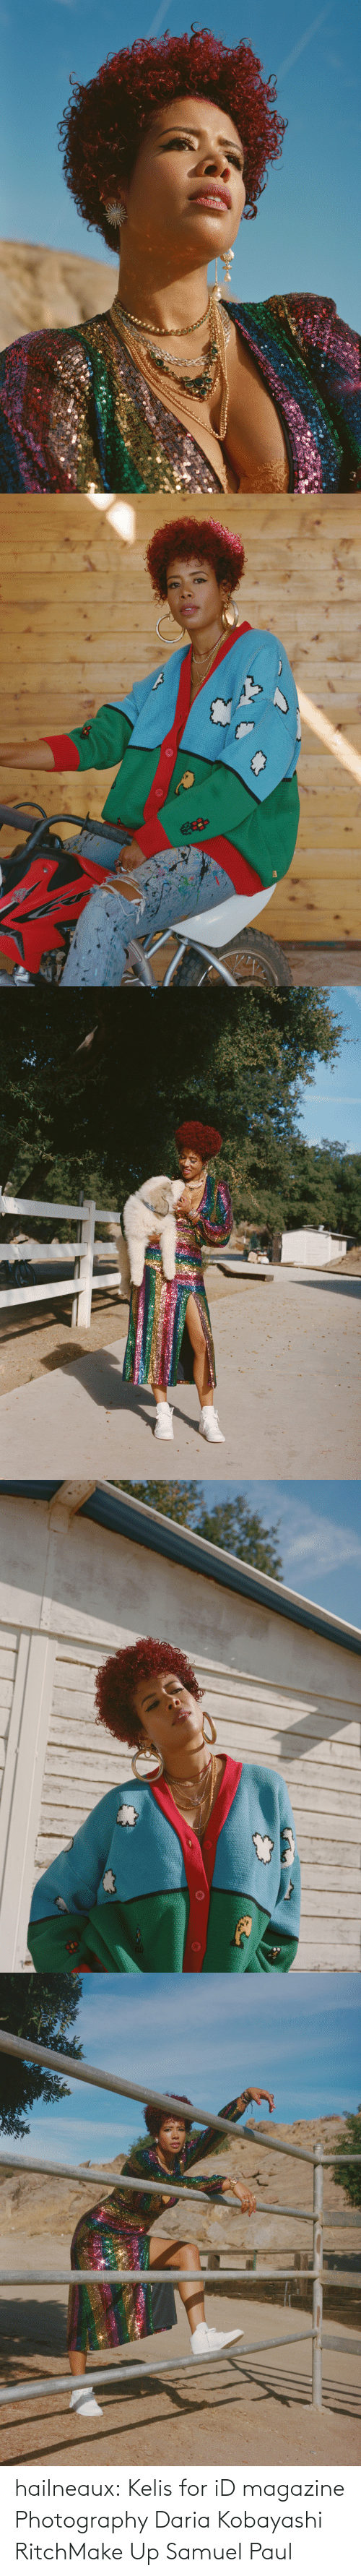 pharrell: hailneaux: Kelis for iD magazine Photography Daria Kobayashi RitchMake Up Samuel Paul